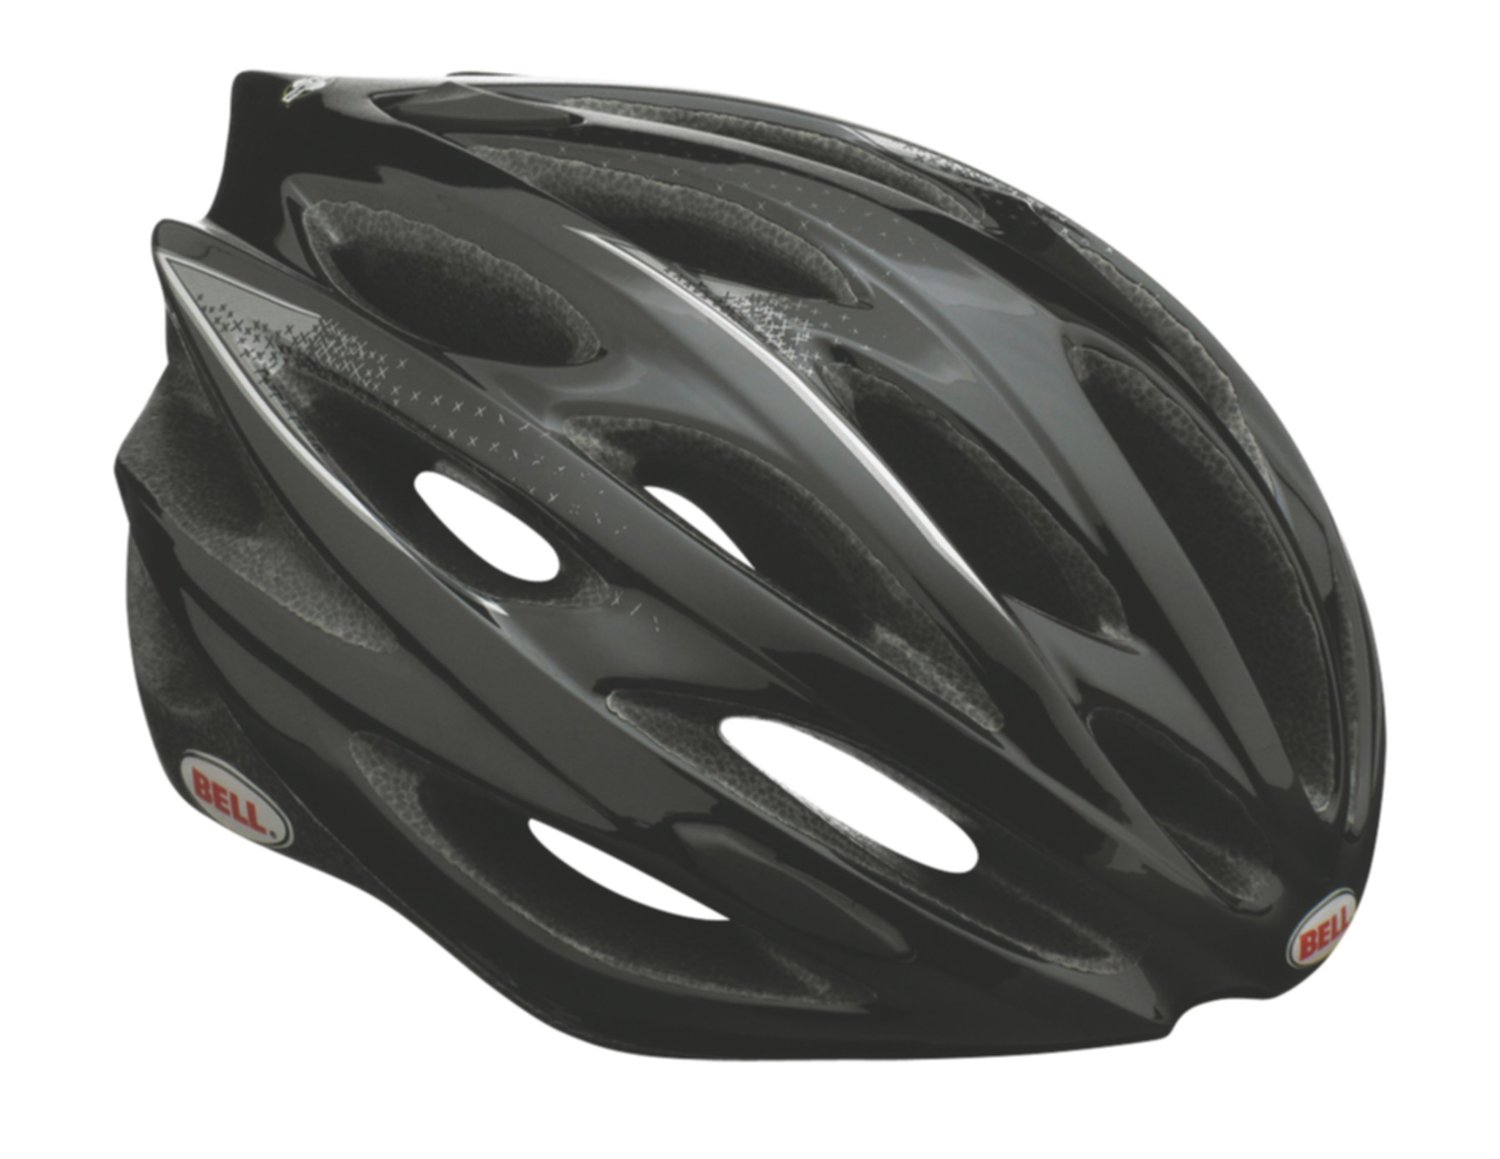 Large Bell Bicycle Helmets